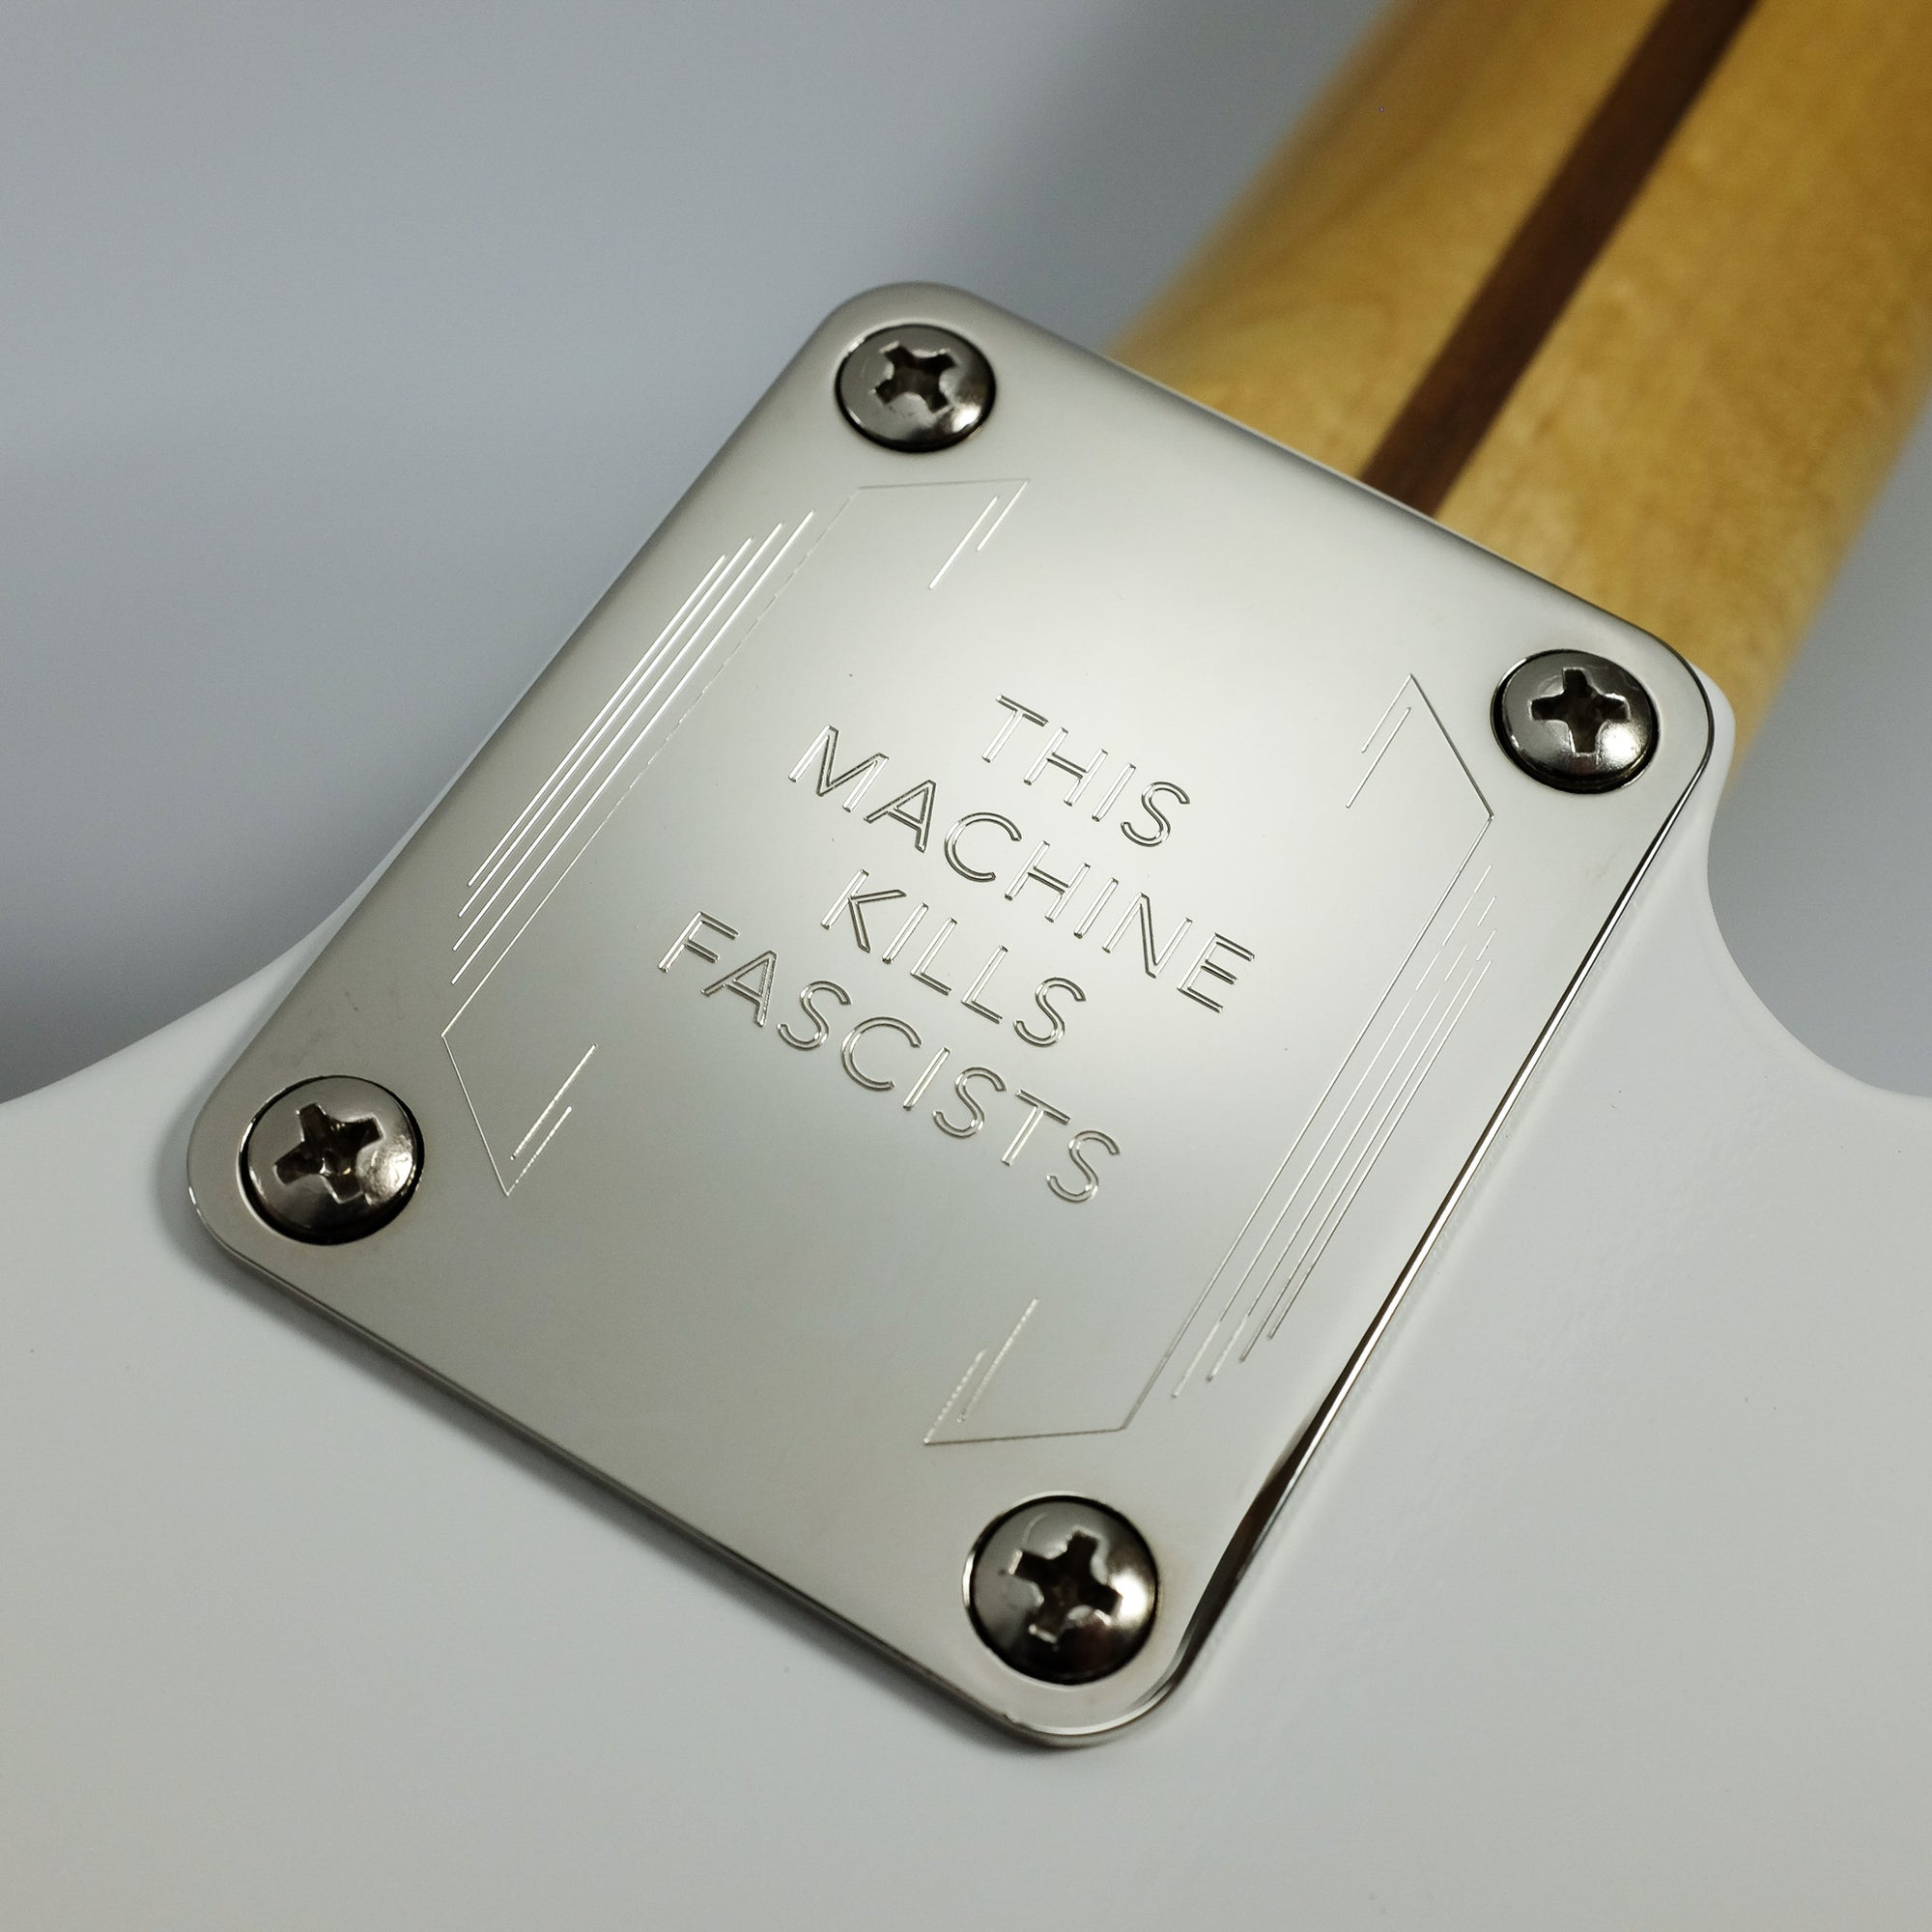 THIS MACHINE KILLS FASCISTS - Engraved Neckplate